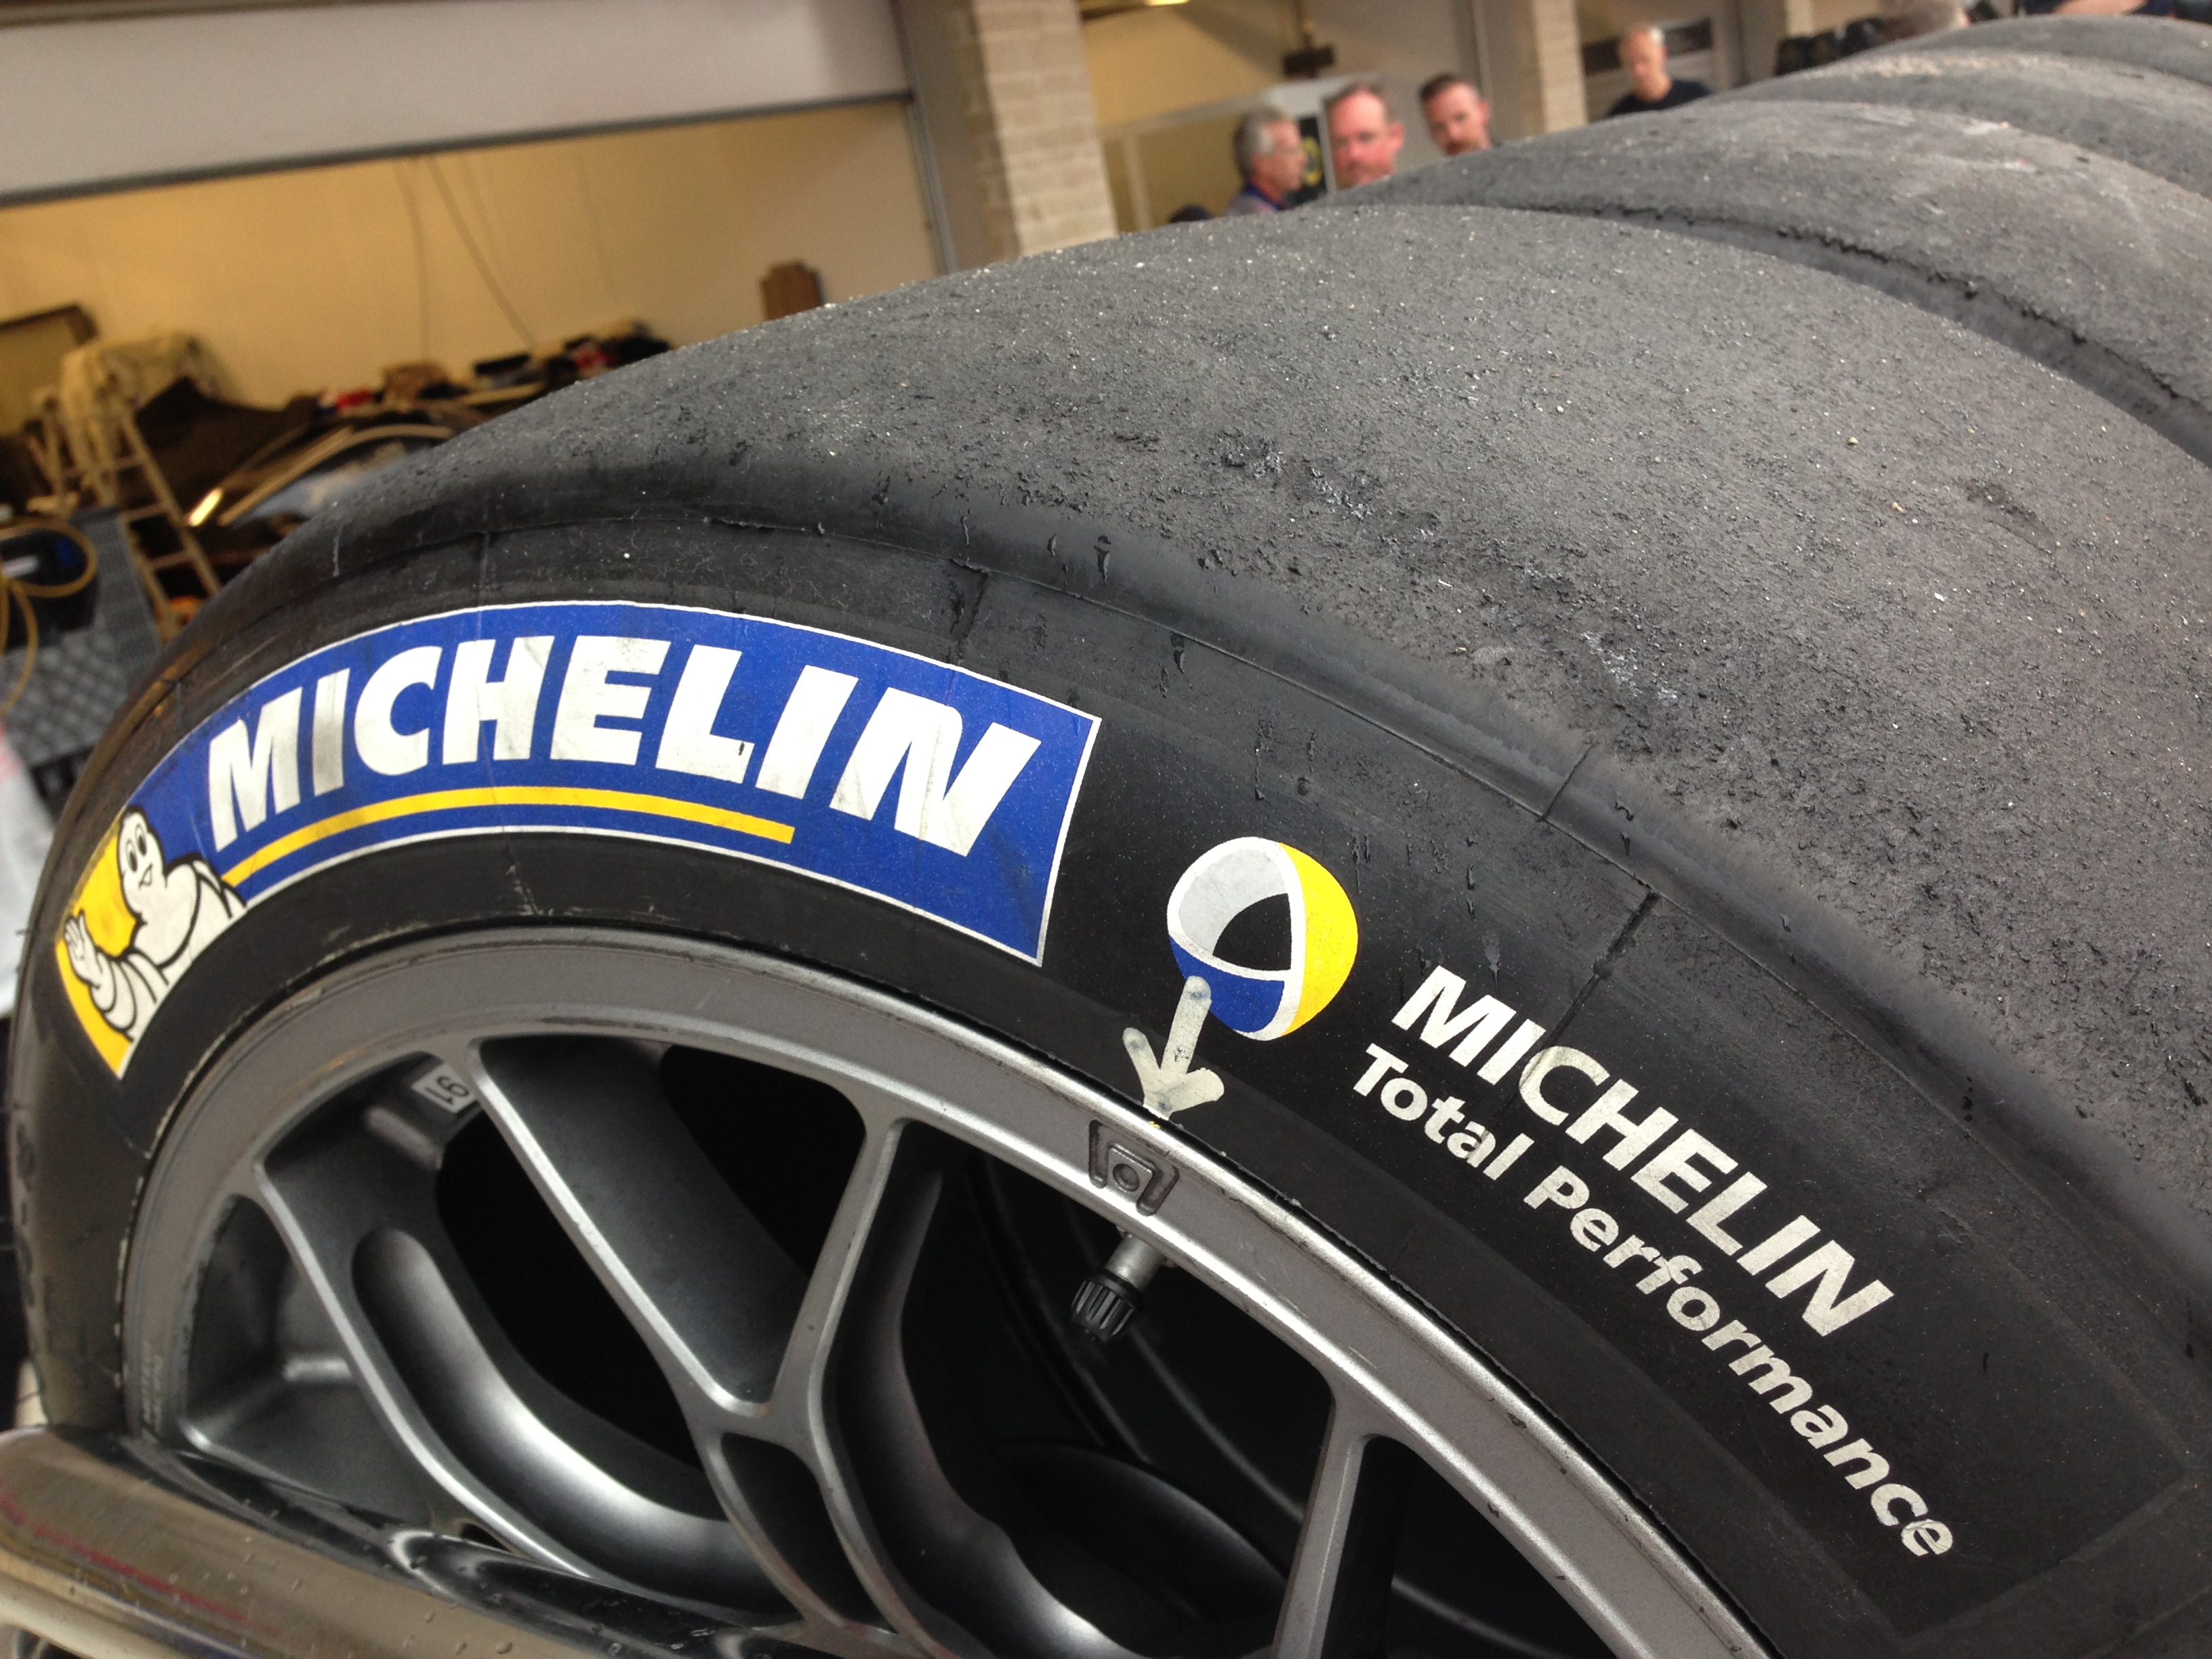 One of the thousands of Michelin competition tires spotted at COTA for the ALMS/FIAWEC weekend.